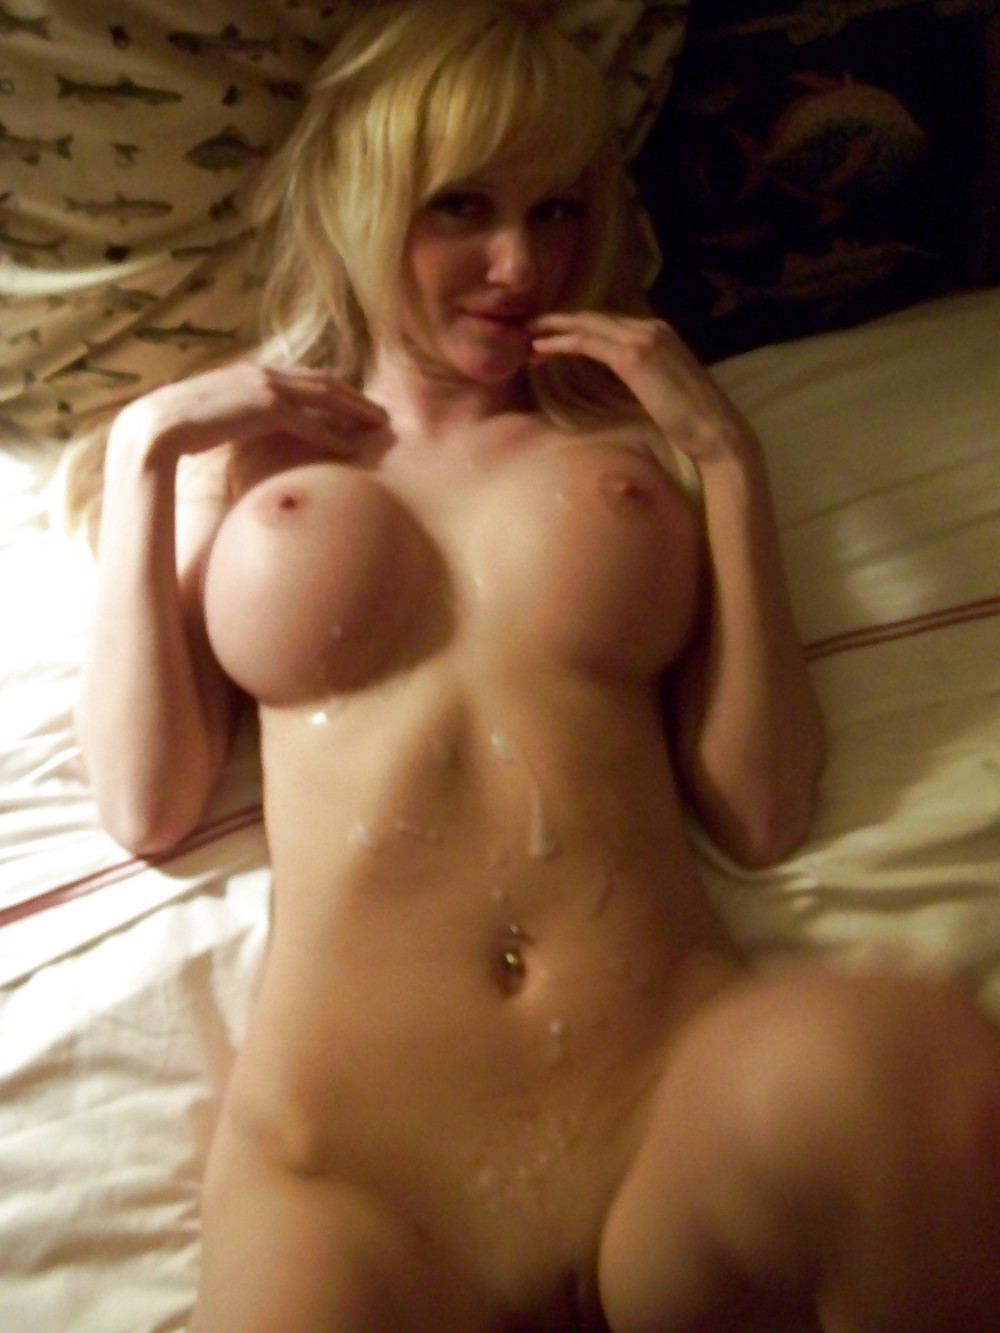 elise free sex videos watch beautiful and exciting